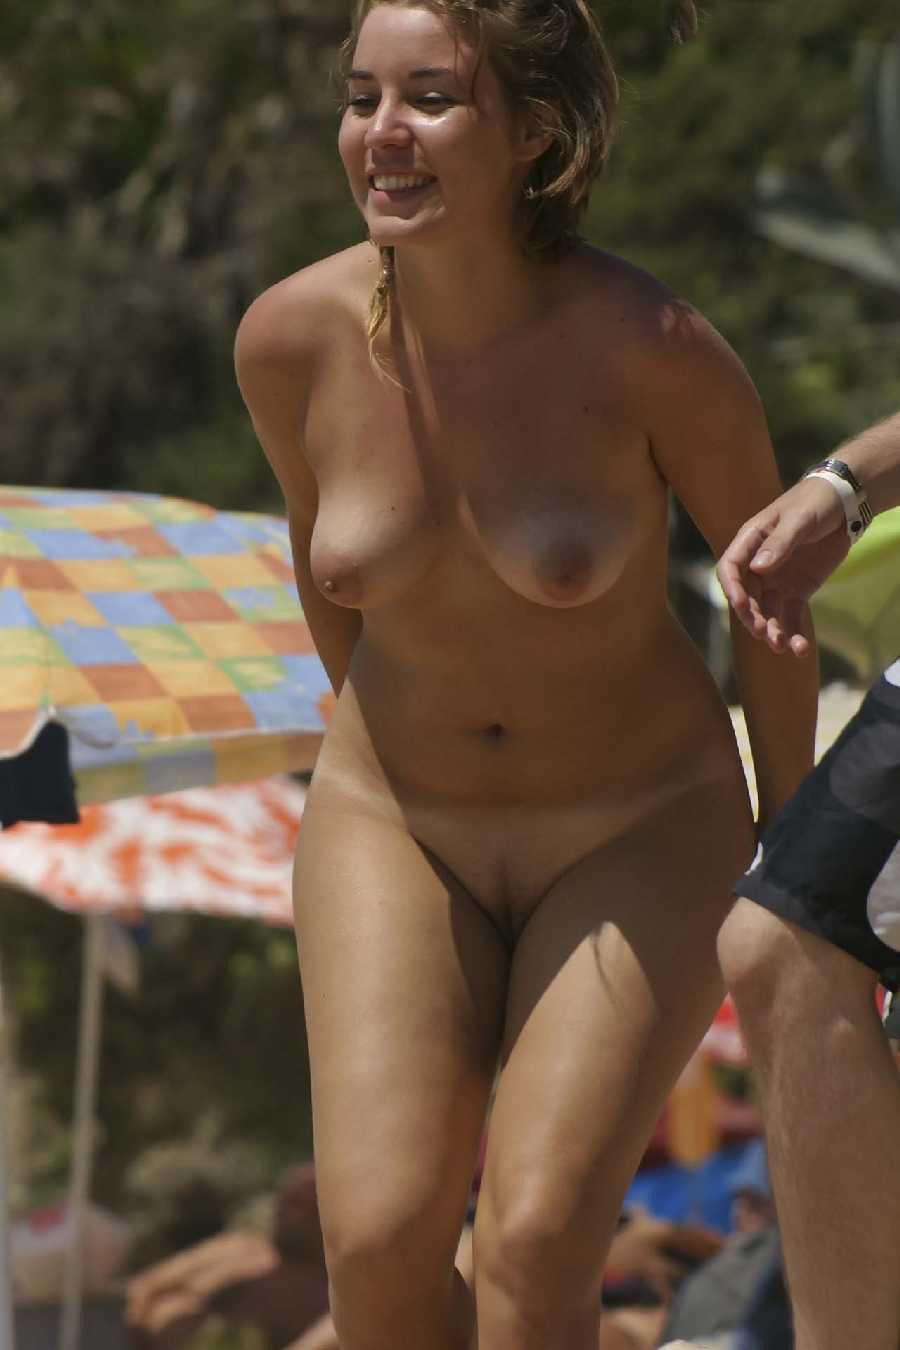 Real naked girls outdoors